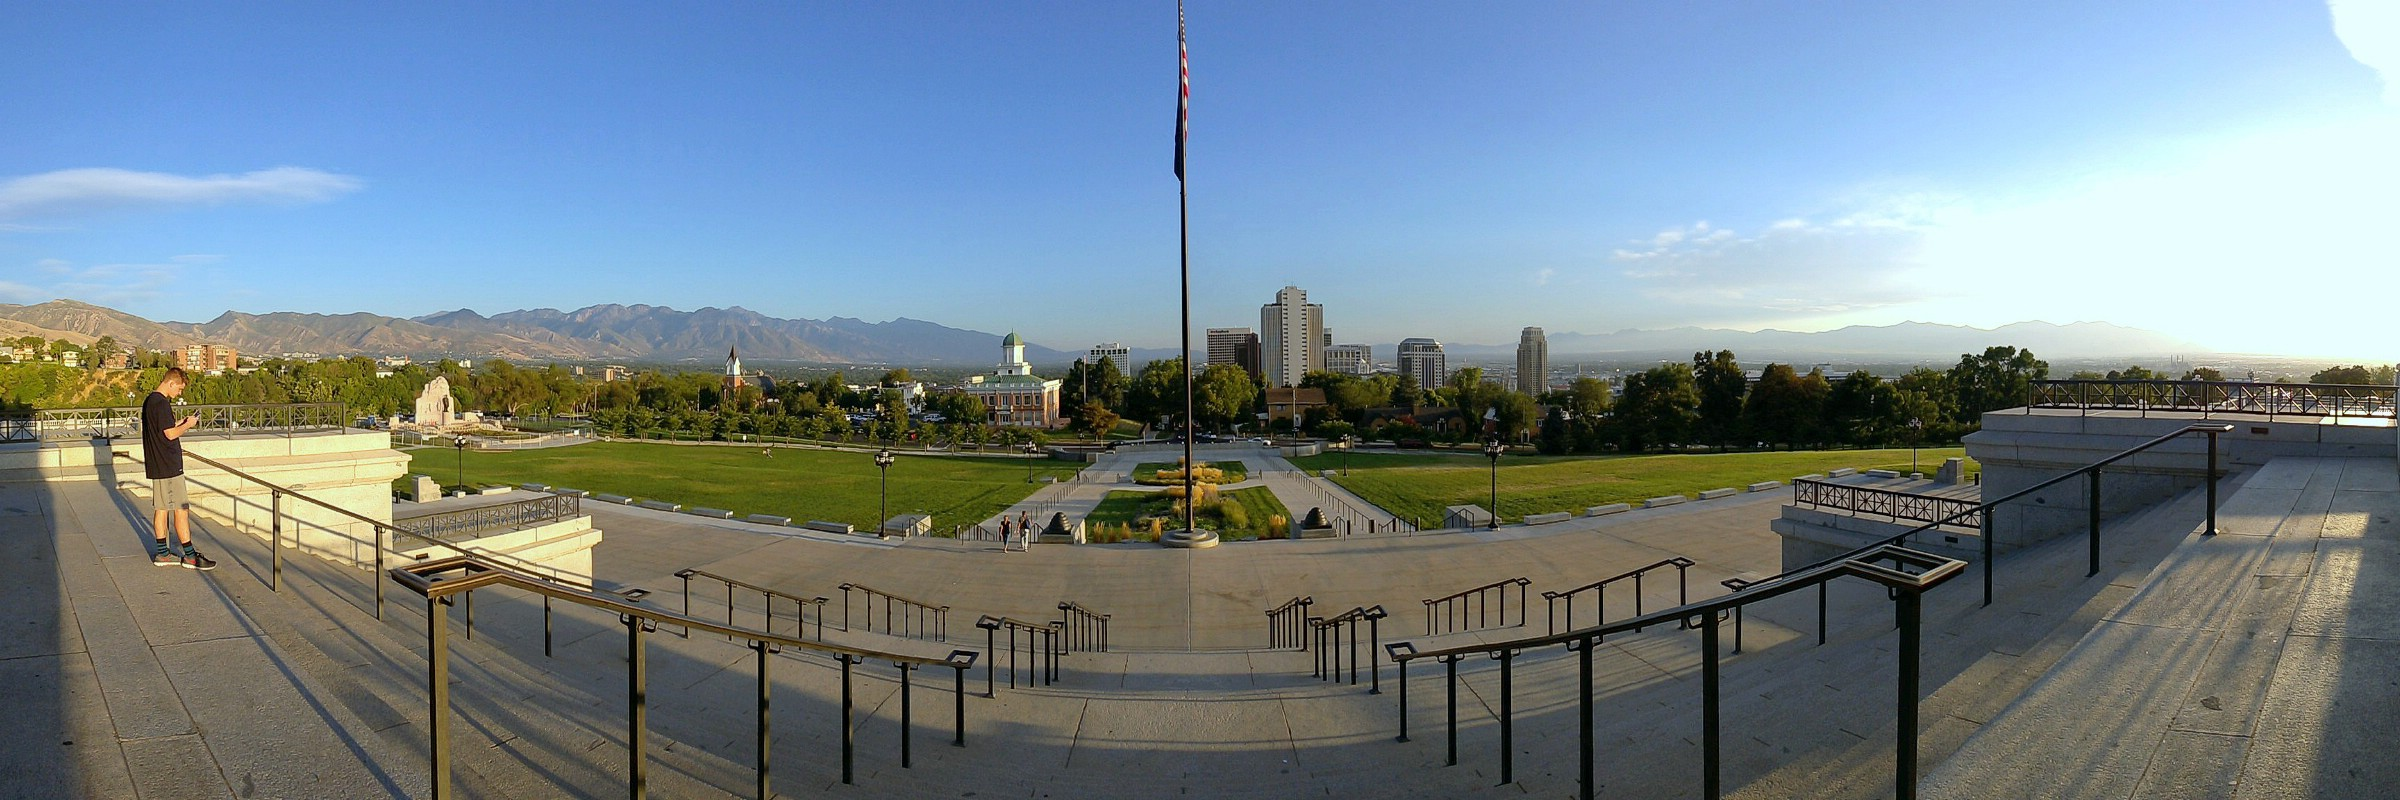 Salt Lake City at sunset as seen from the steps of the State Capitol Building. Salt Lake City, Utah. September 6, 2016.